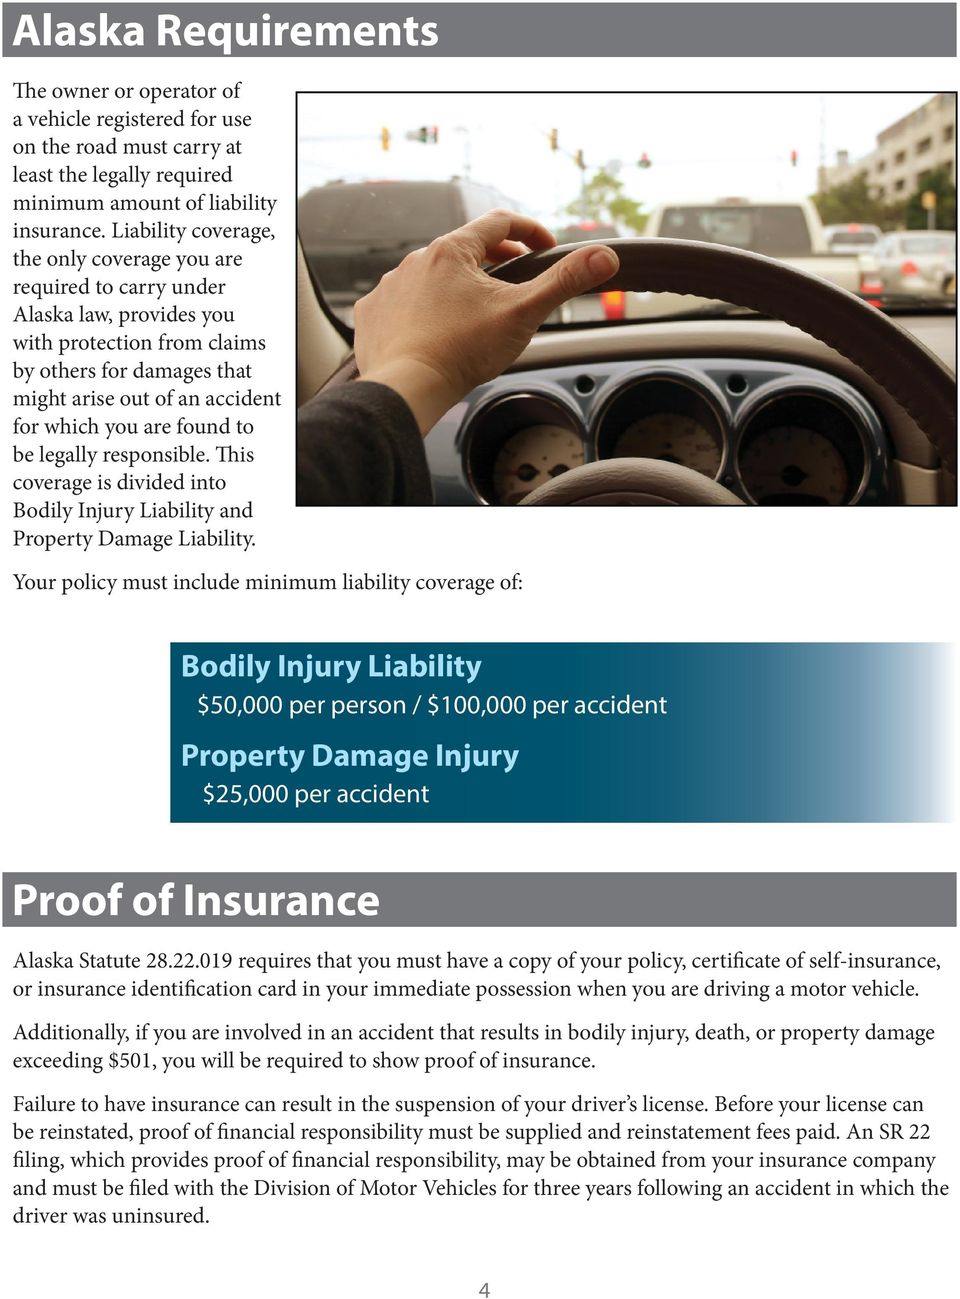 found to be legally responsible. This coverage is divided into Bodily Injury Liability and Property Damage Liability.